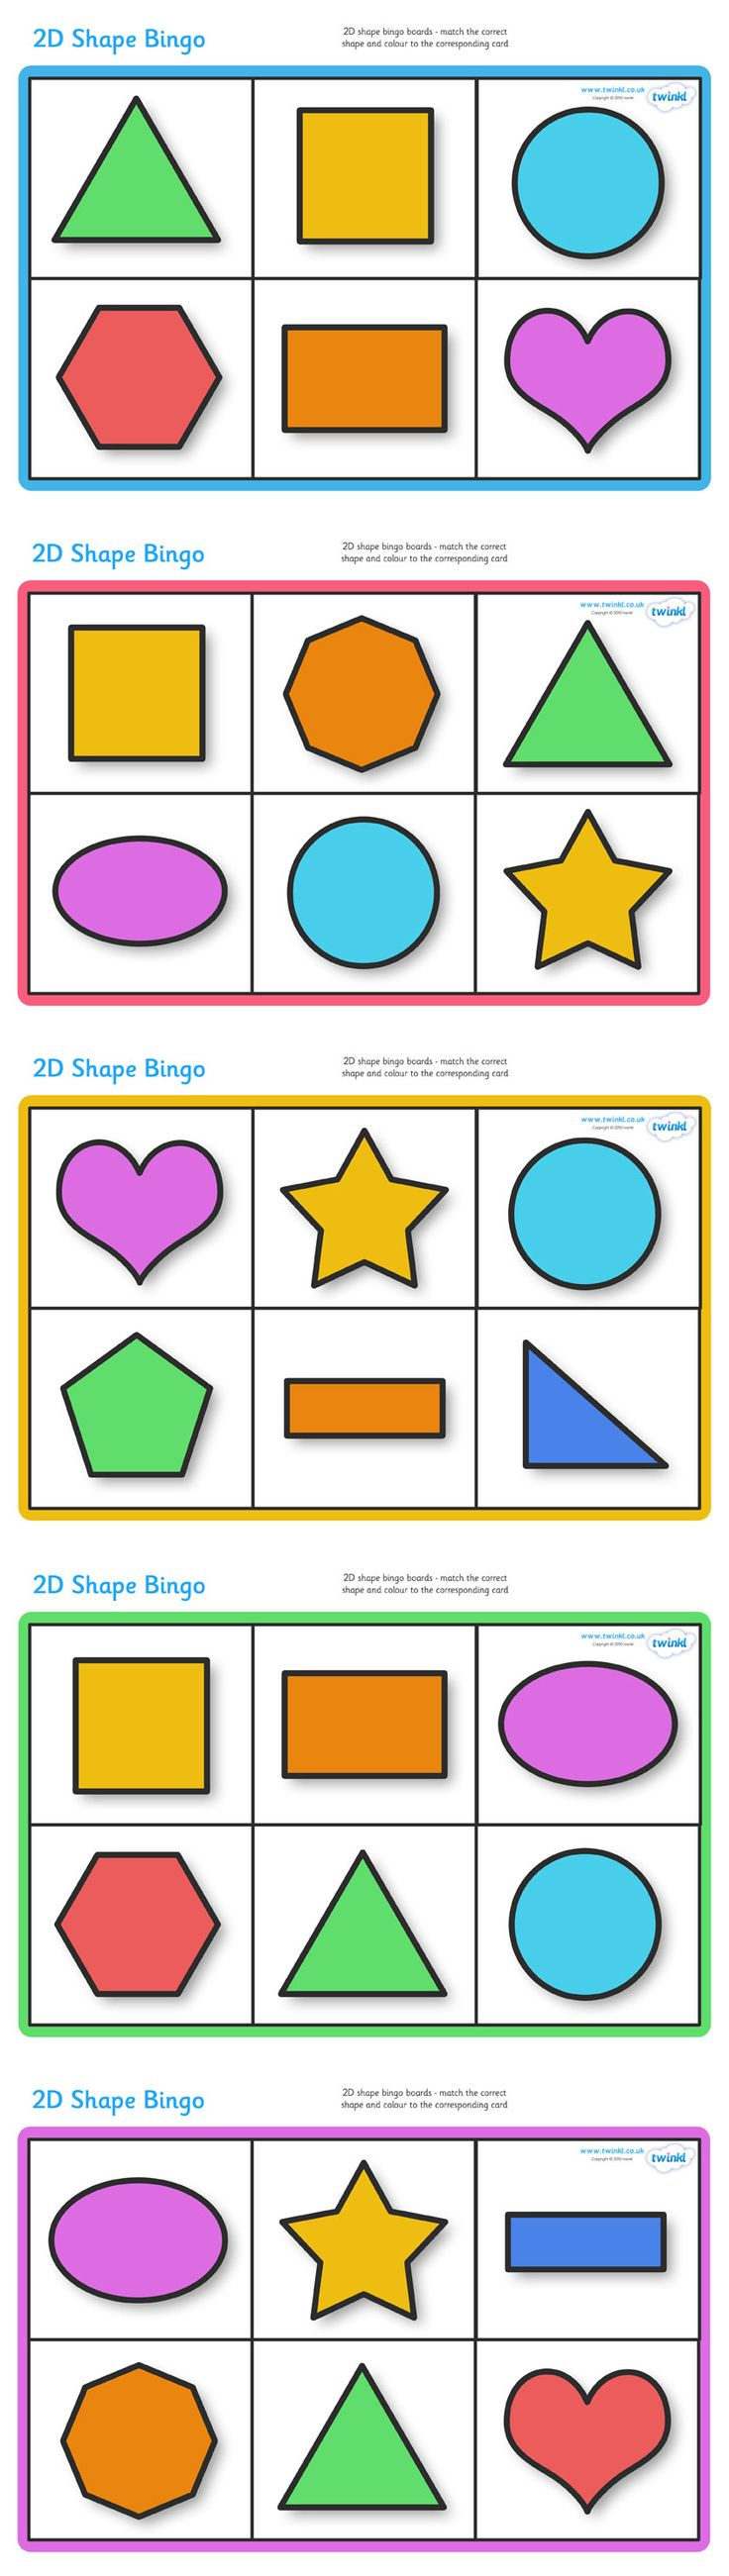 Worksheet Shape Printable best 25 printable shapes ideas on pinterest for twinkl resources 2d shape bingo classroom printables pre school